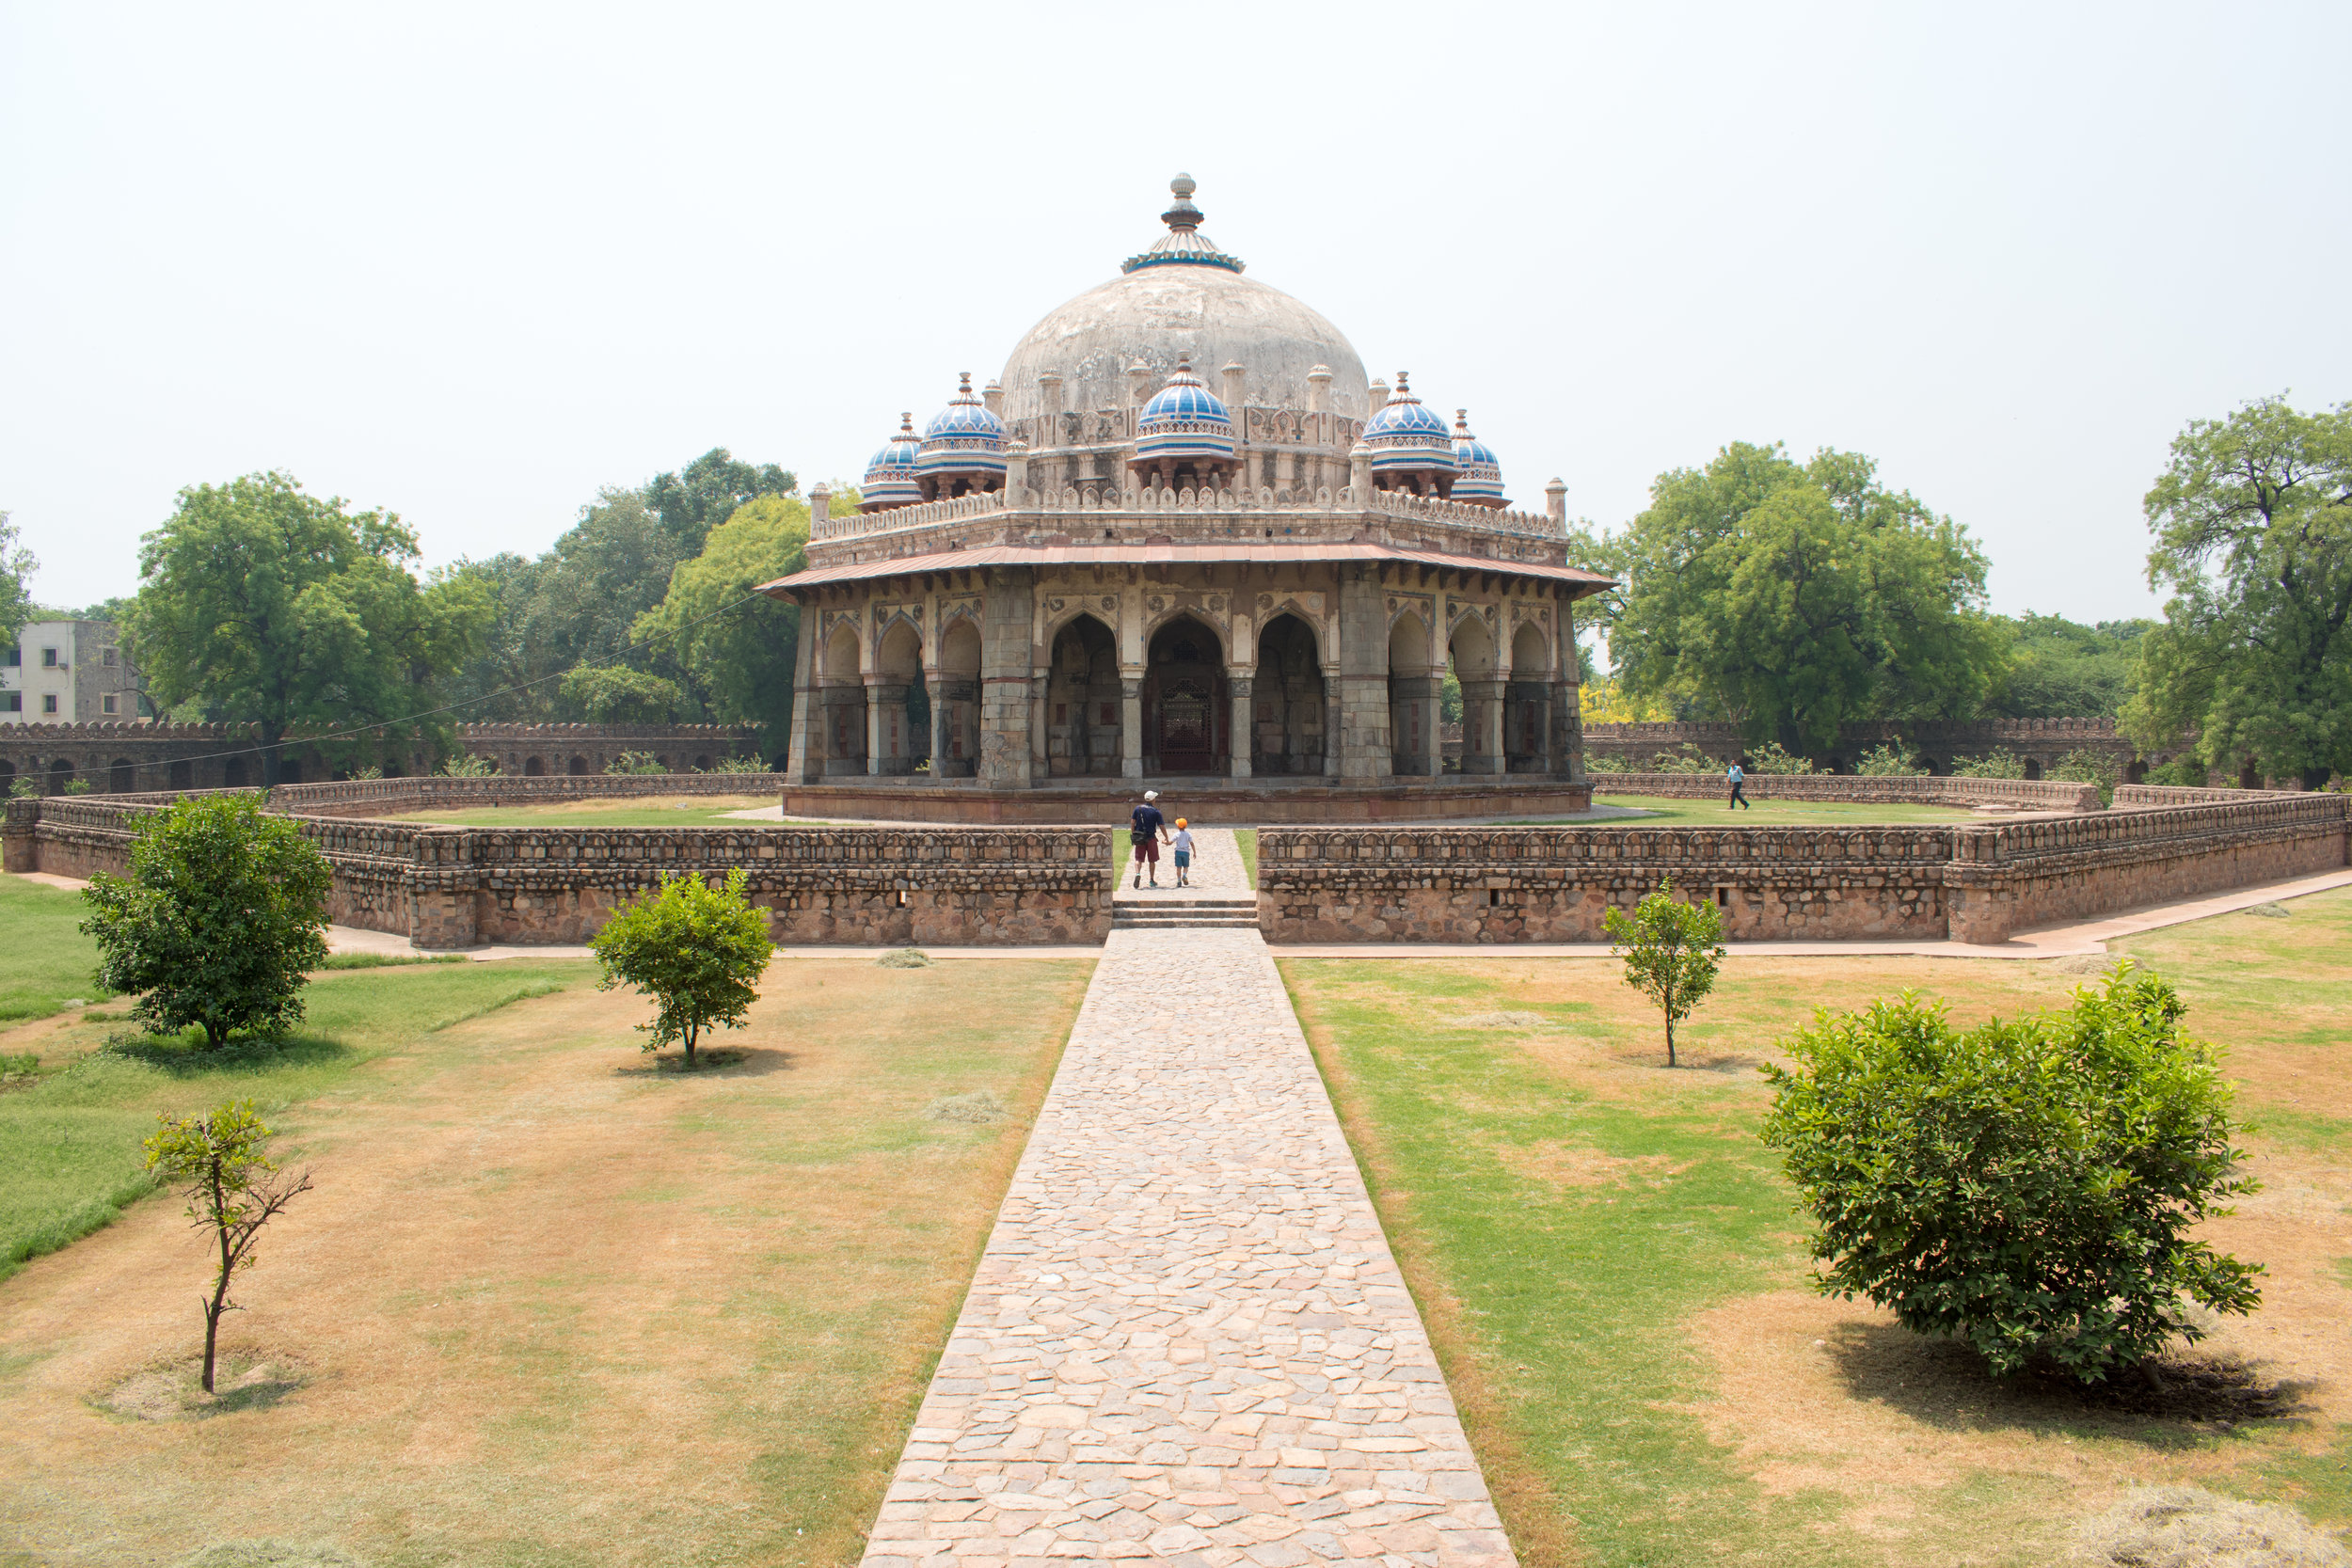 In The Grounds of Humayan's Tomb in Delhi, India